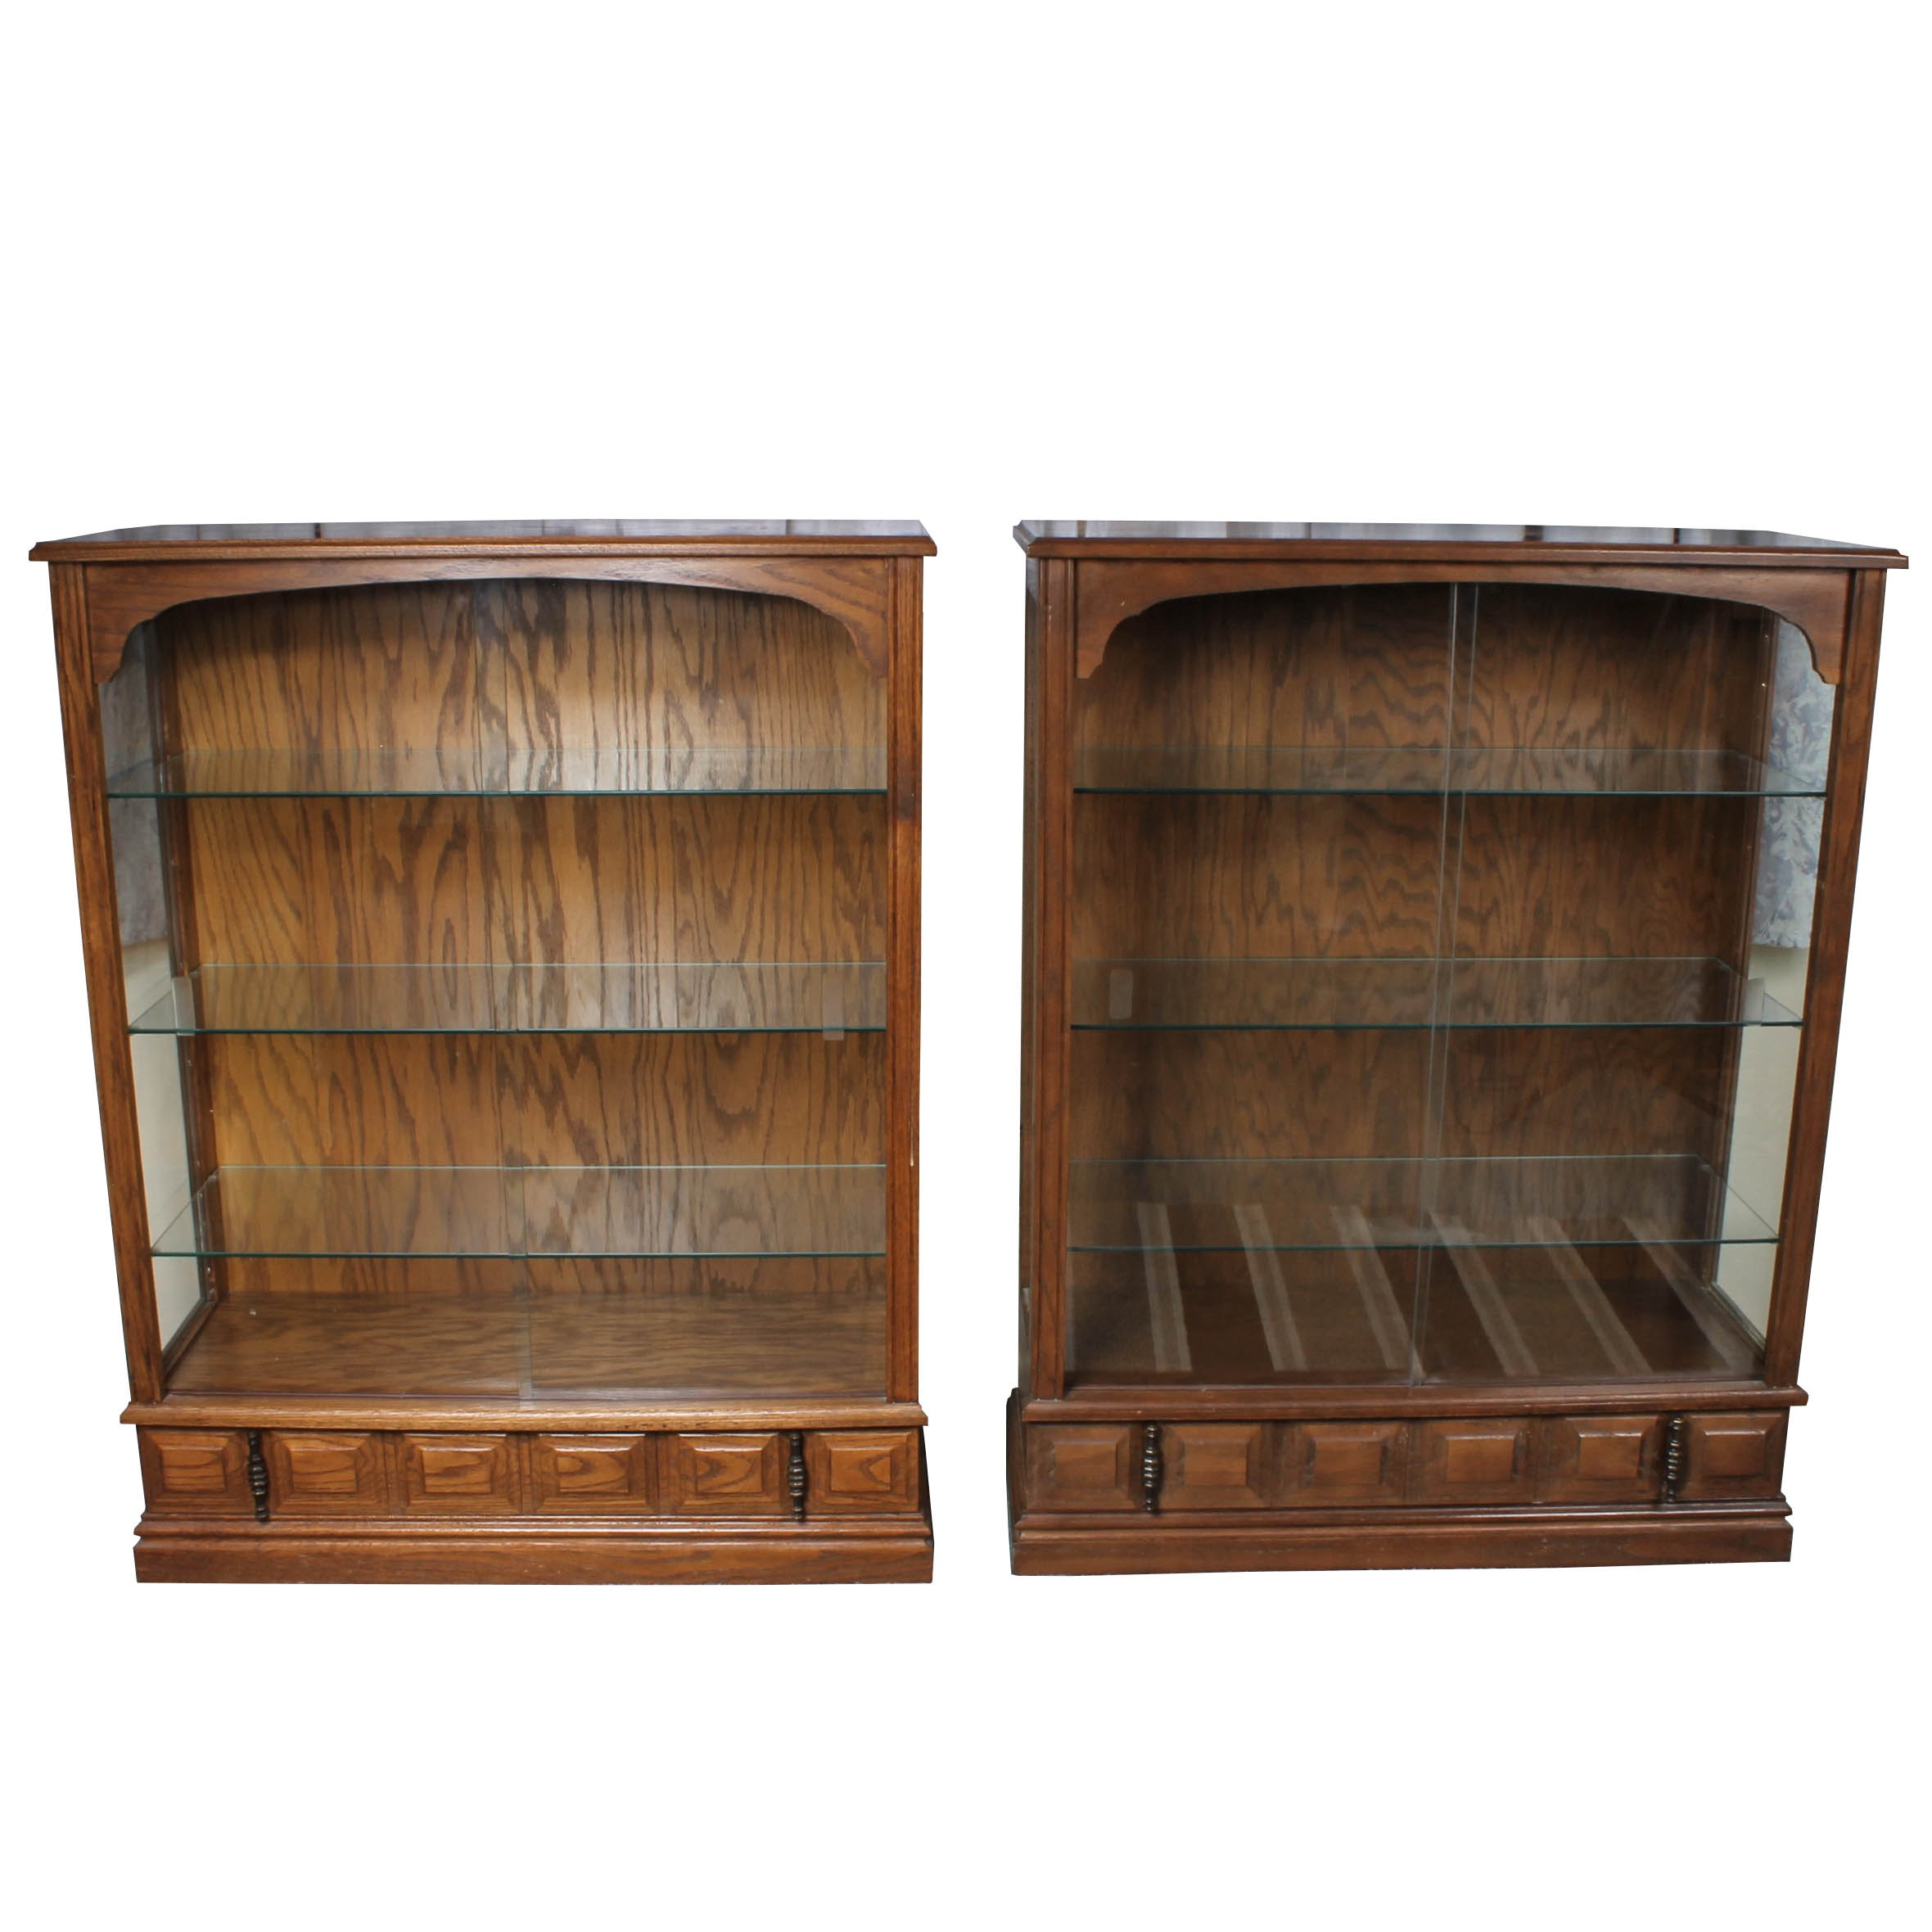 Pair of Matching Display Cabinets